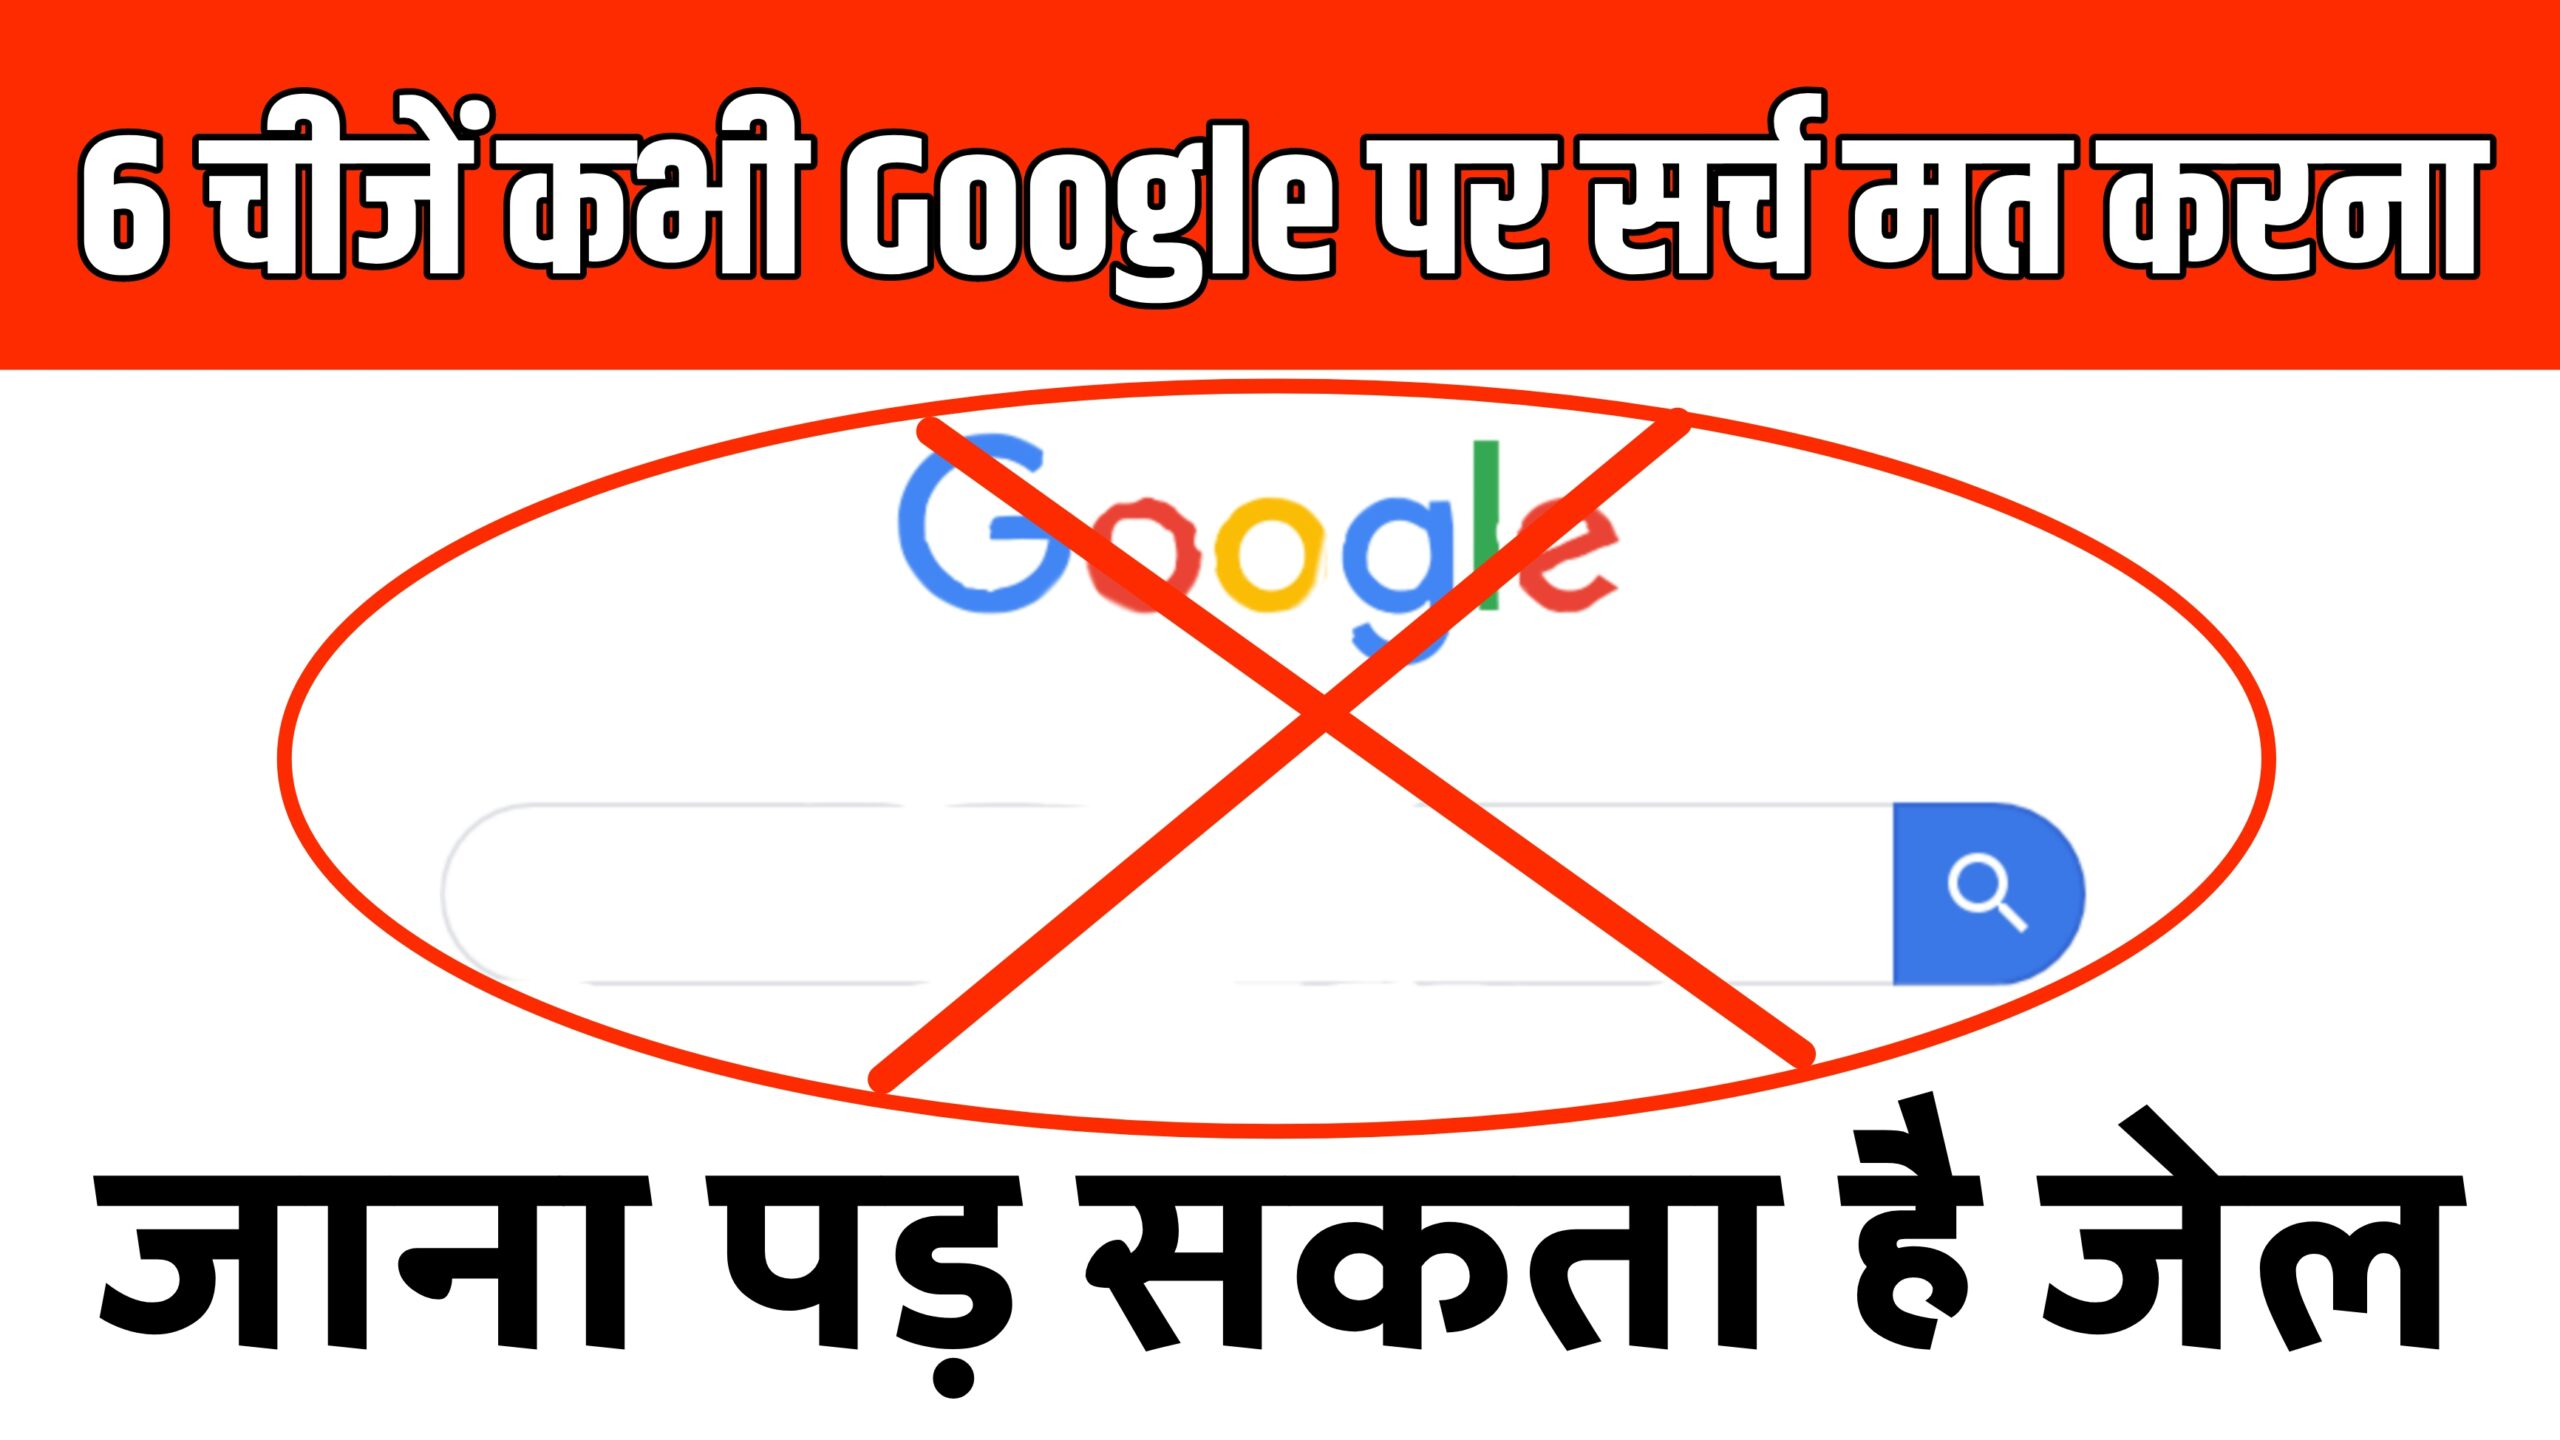 6 Chije Kabhi Google par Search Na Kare Never Search 6 Things on Google